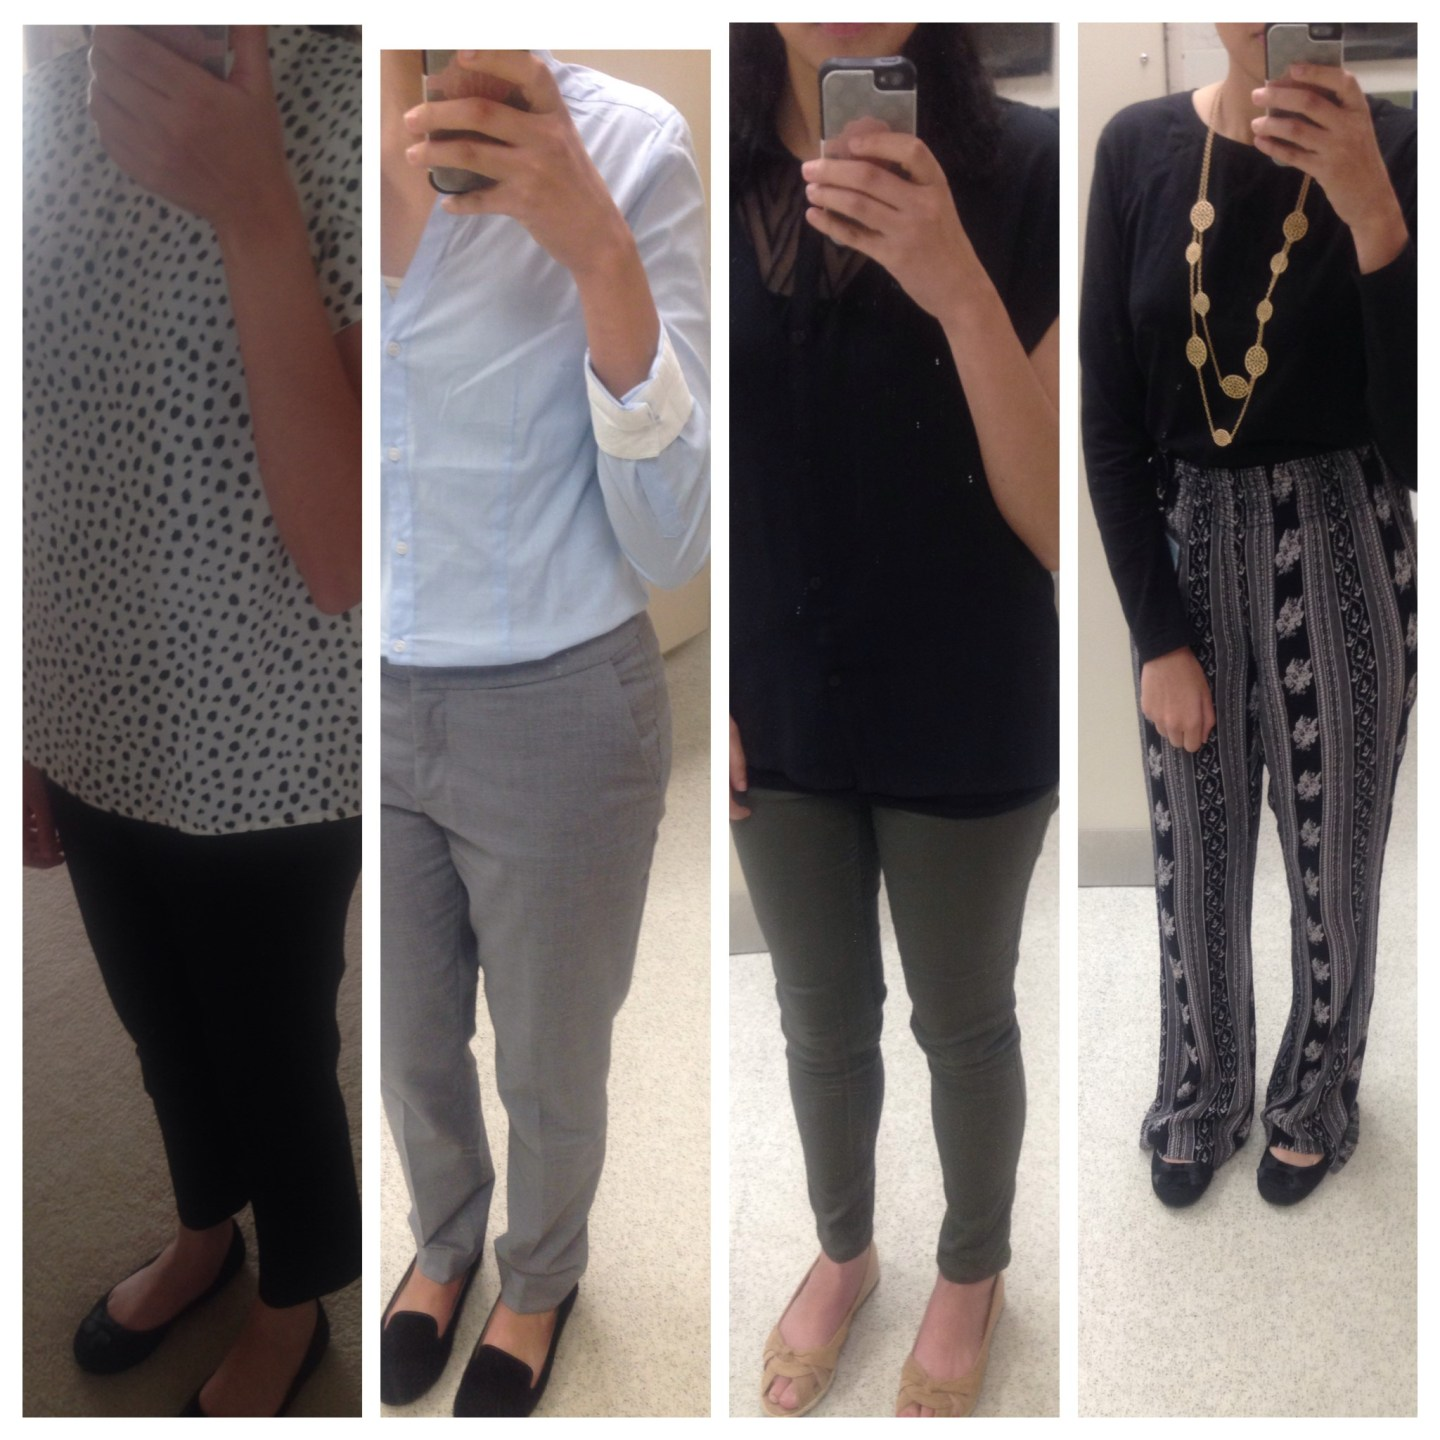 Fashion Friday: Four Simple & Stylish Outfits for Work or Fun!